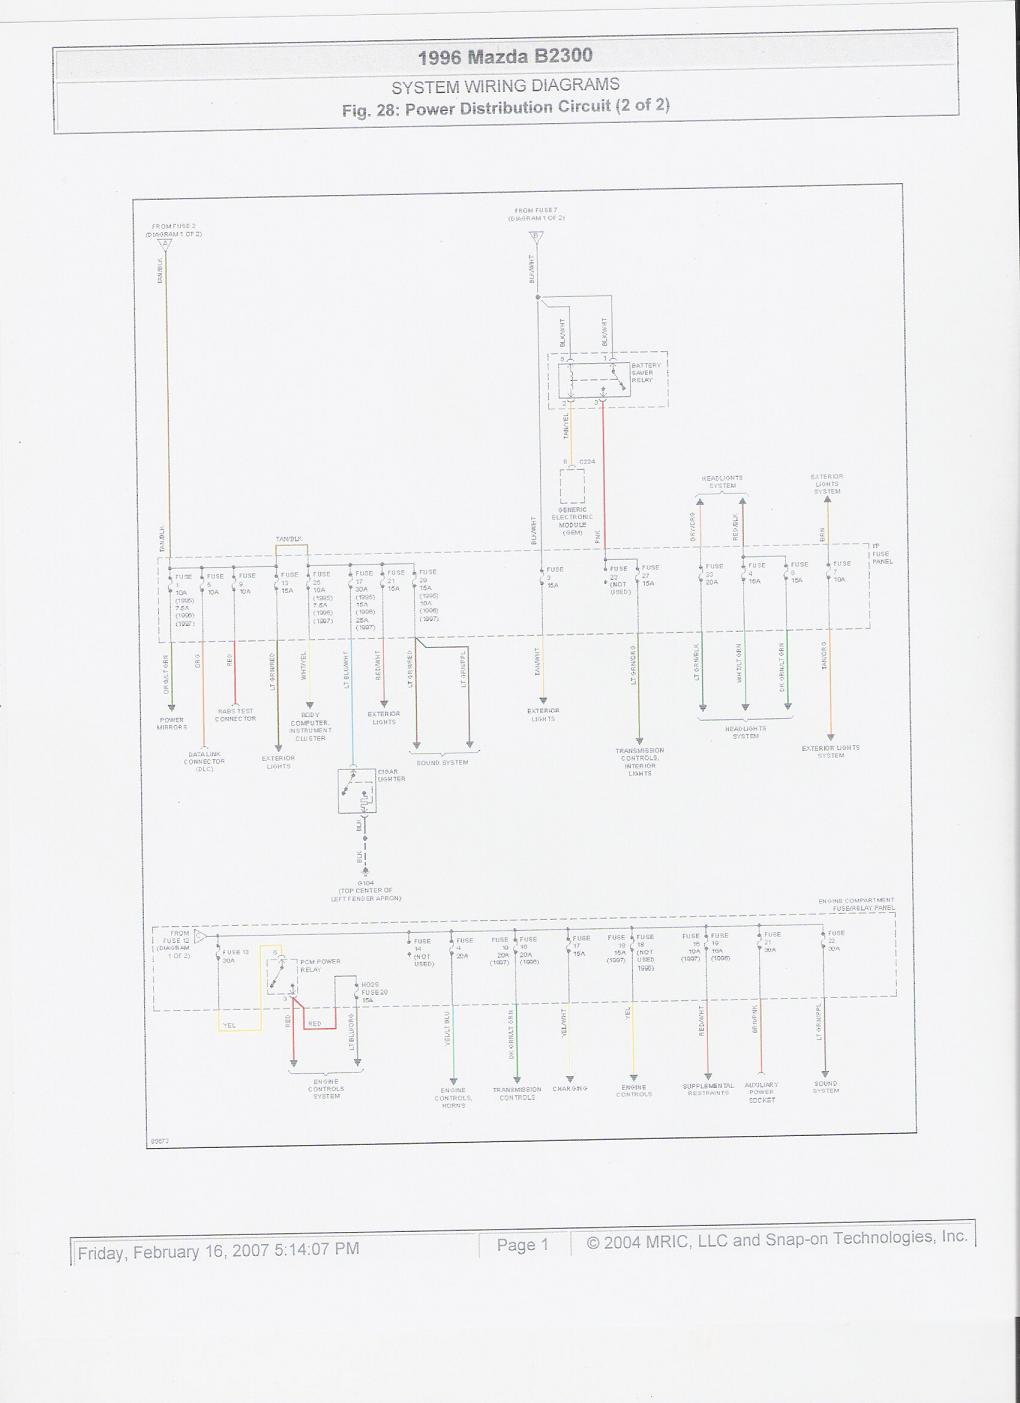 1996 mazda b2300 fuse panel diagram graphic